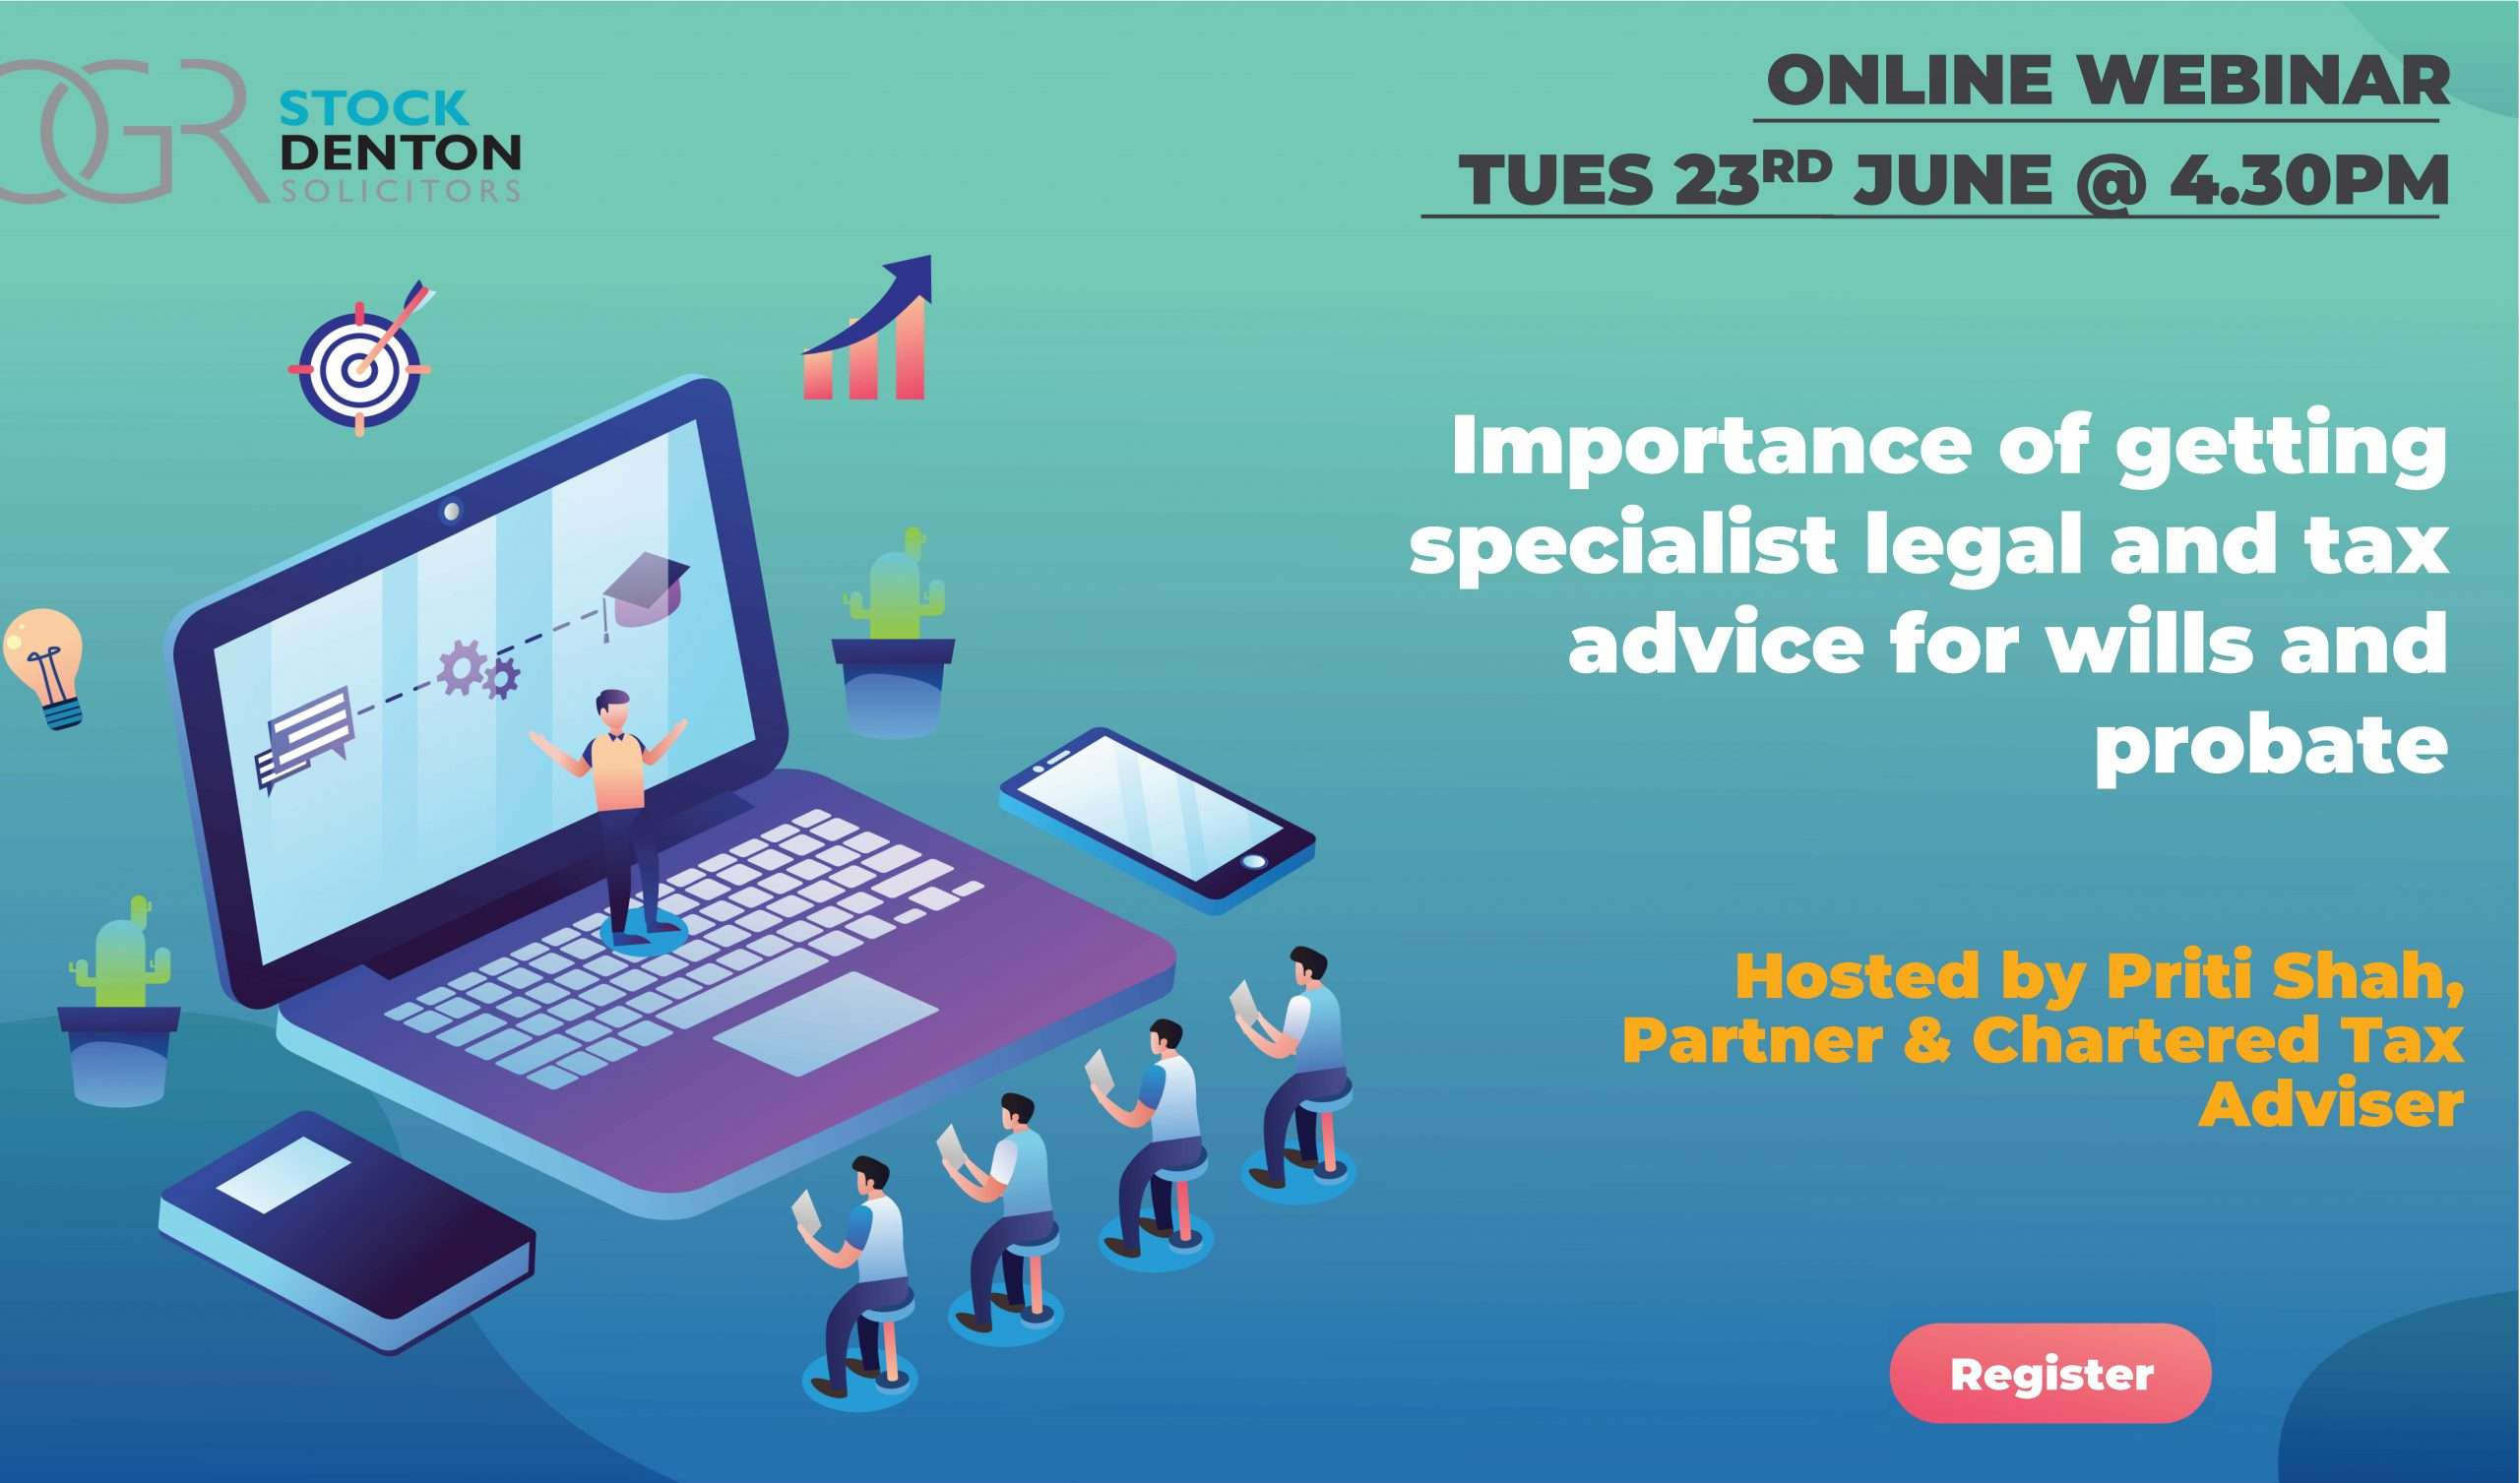 Importance of getting specialist legal and tax advice for wills and probate